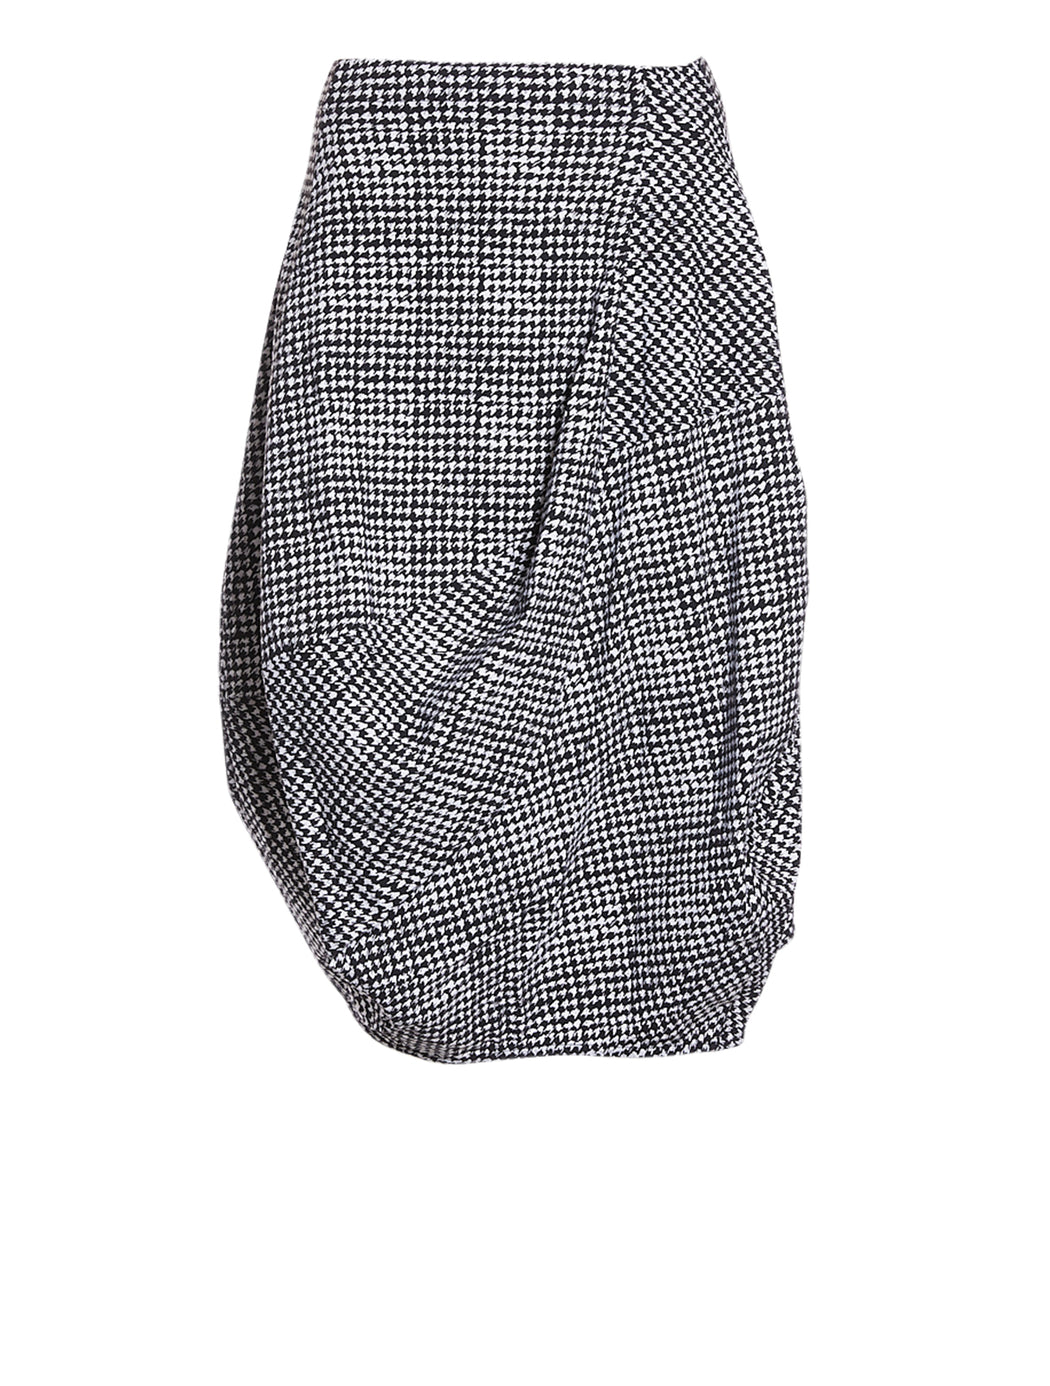 Houndstooth Tulip Skirt